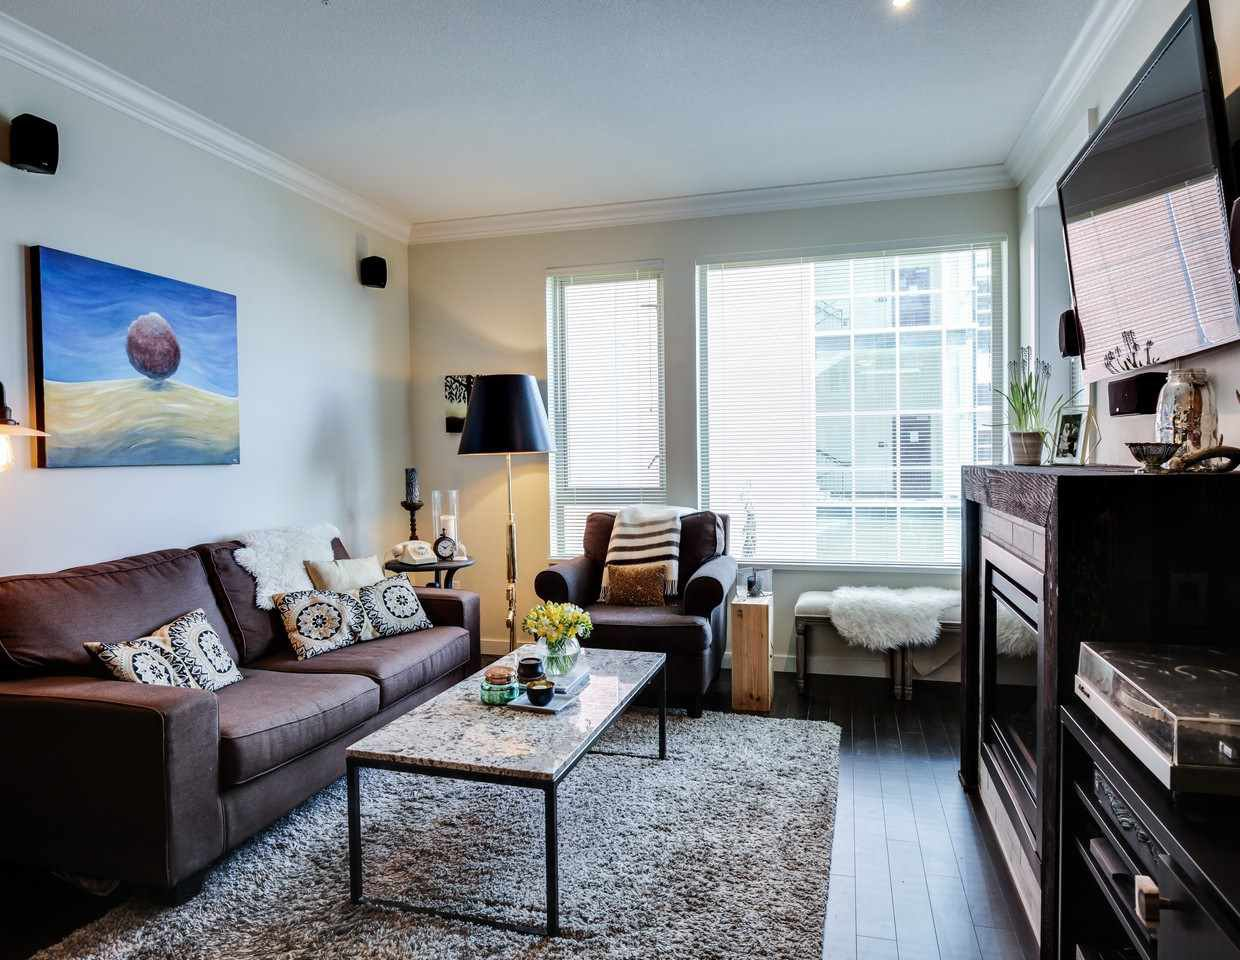 Photo 6: Photos: 319 119 W 22ND STREET in North Vancouver: Central Lonsdale Condo for sale : MLS®# R2047201